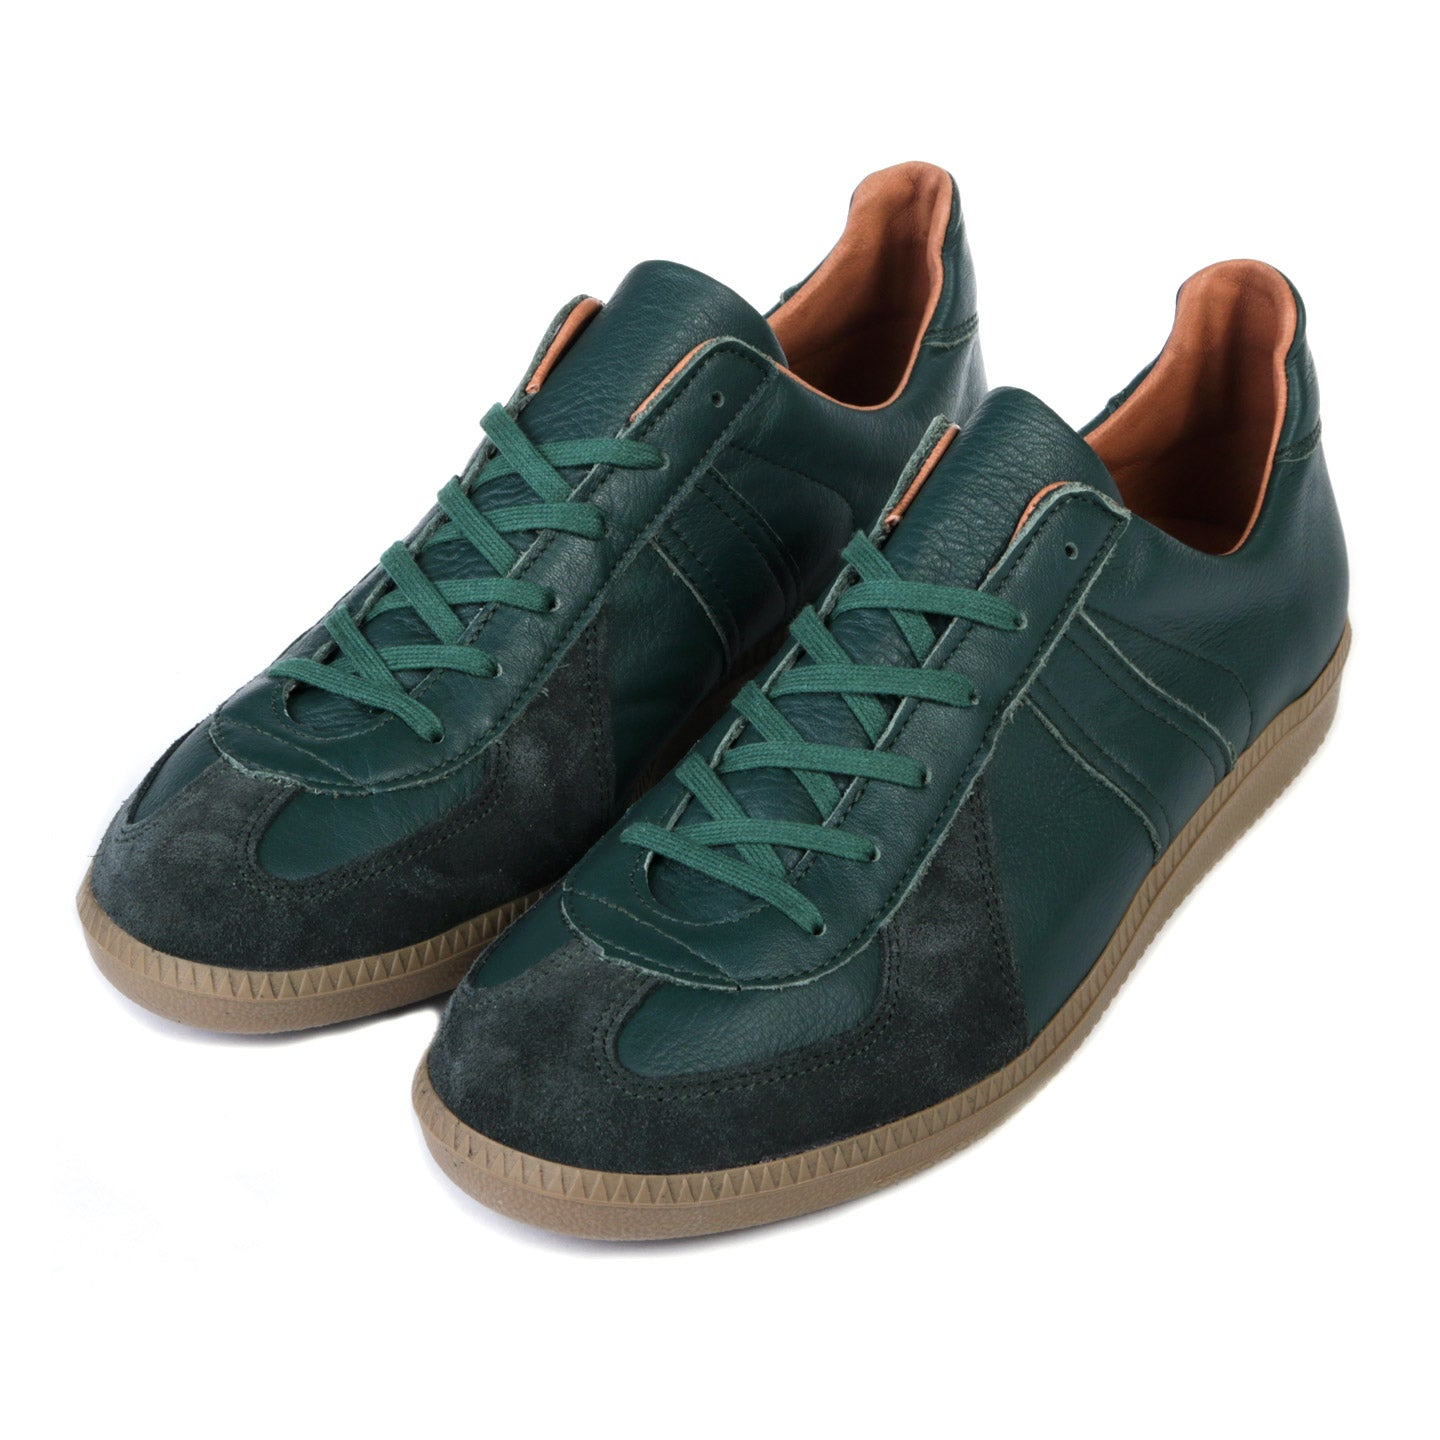 REPRODUCTION OF FOUND GERMAN MILITARY TRAINER DARK GREEN